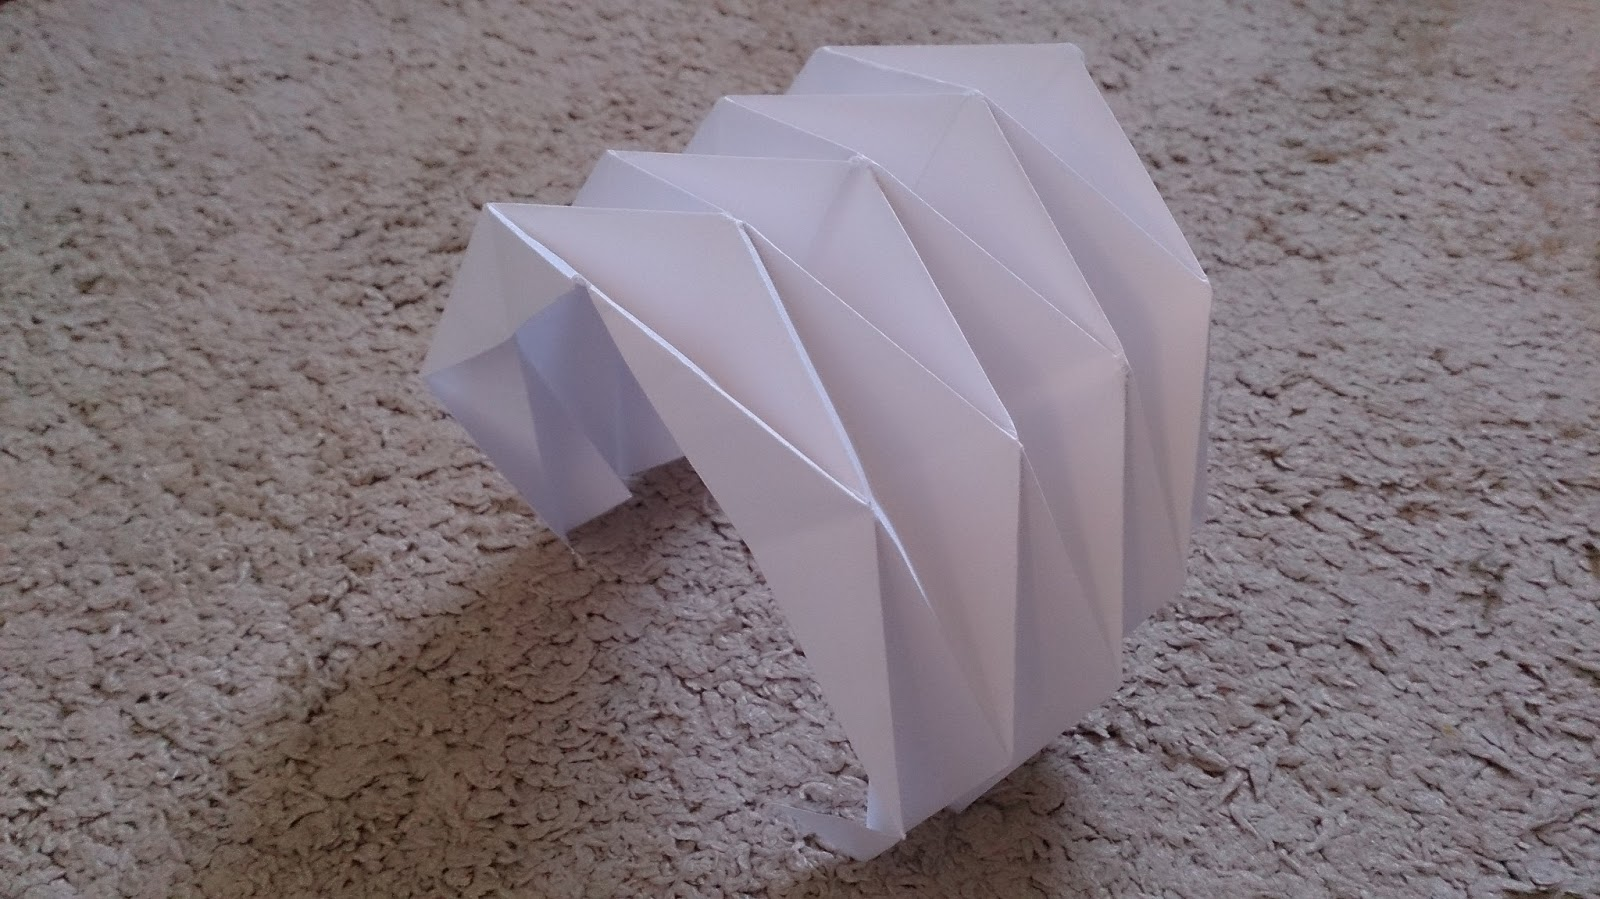 paper folding projects Paper folding models - paper folding diagrams - paper folding projects - paper models projects - origami paper folding models.